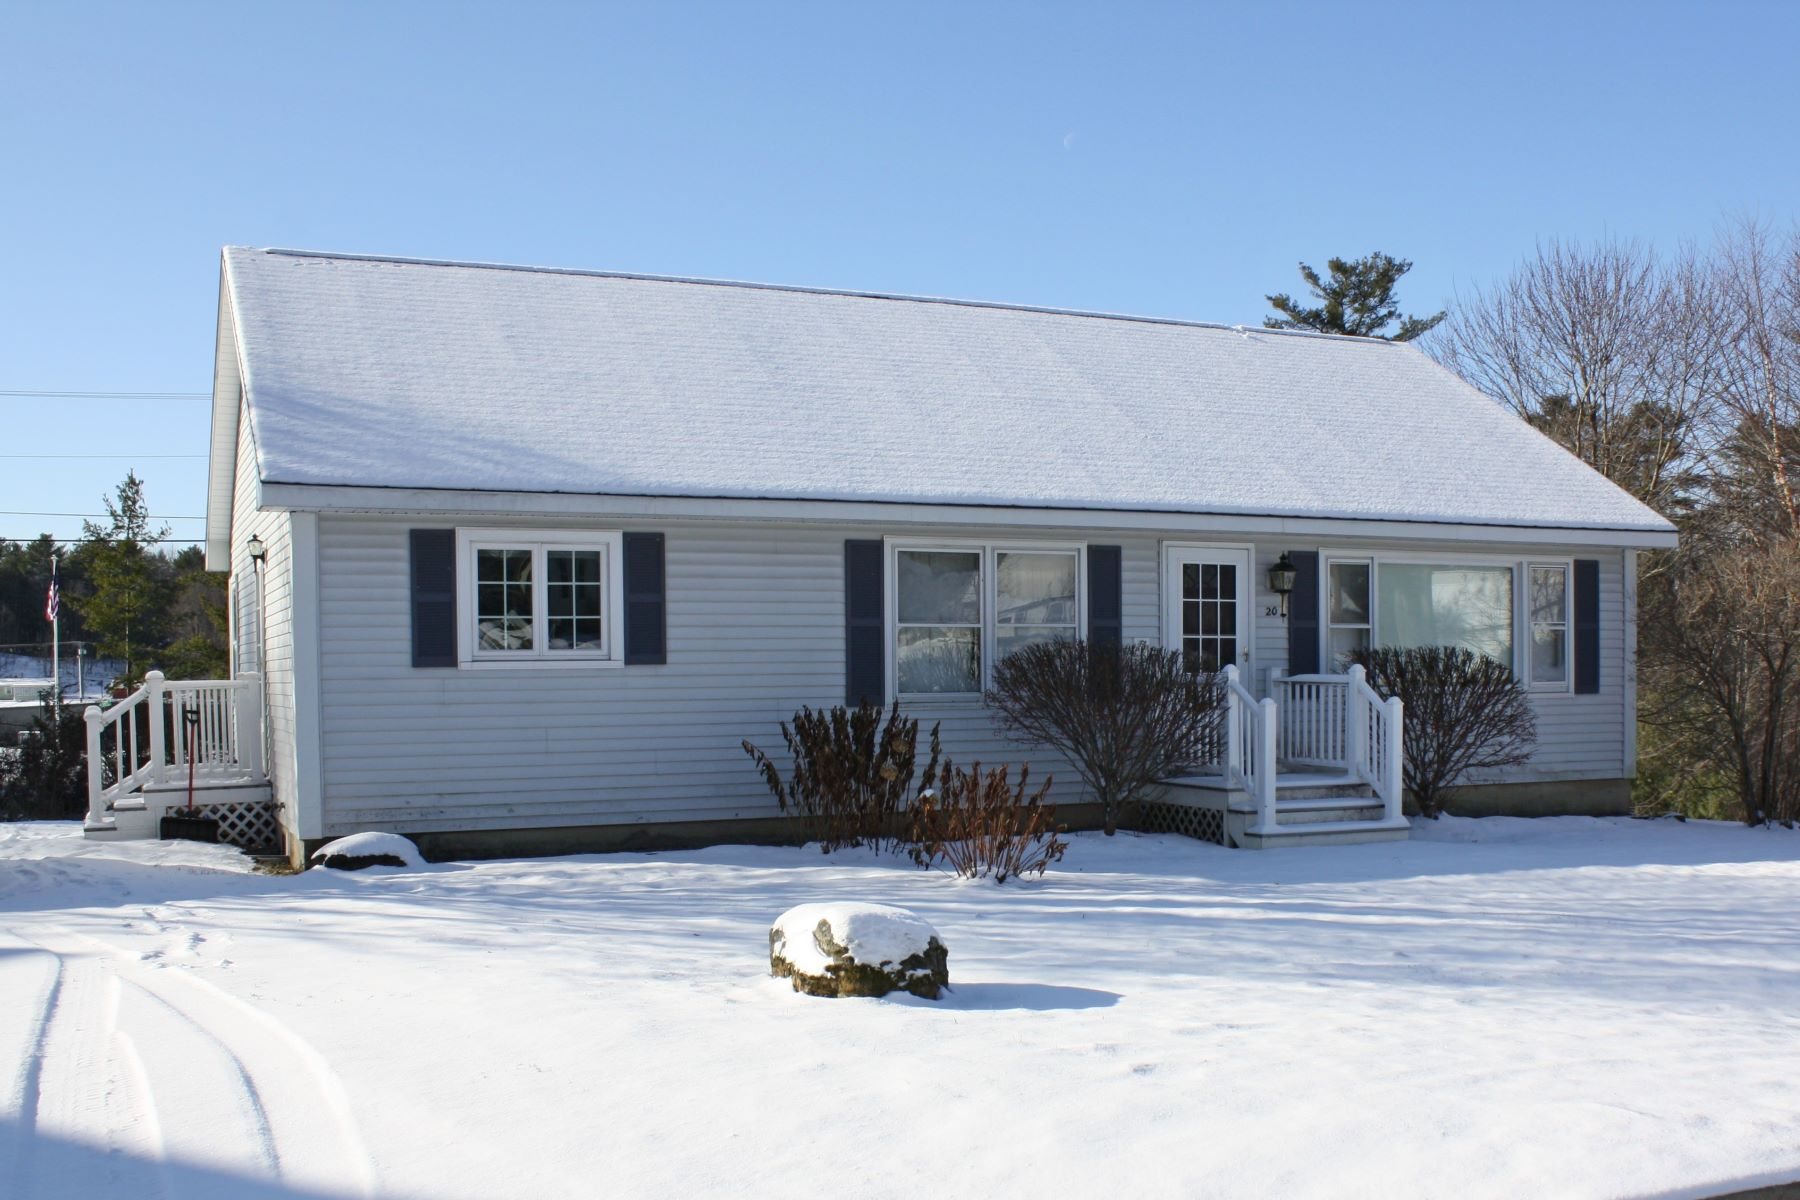 Single Family Homes for Sale at Light filled 3 bedroom well maintained Ranch 20 Stonegate Dr Middlebury, Vermont 05753 United States